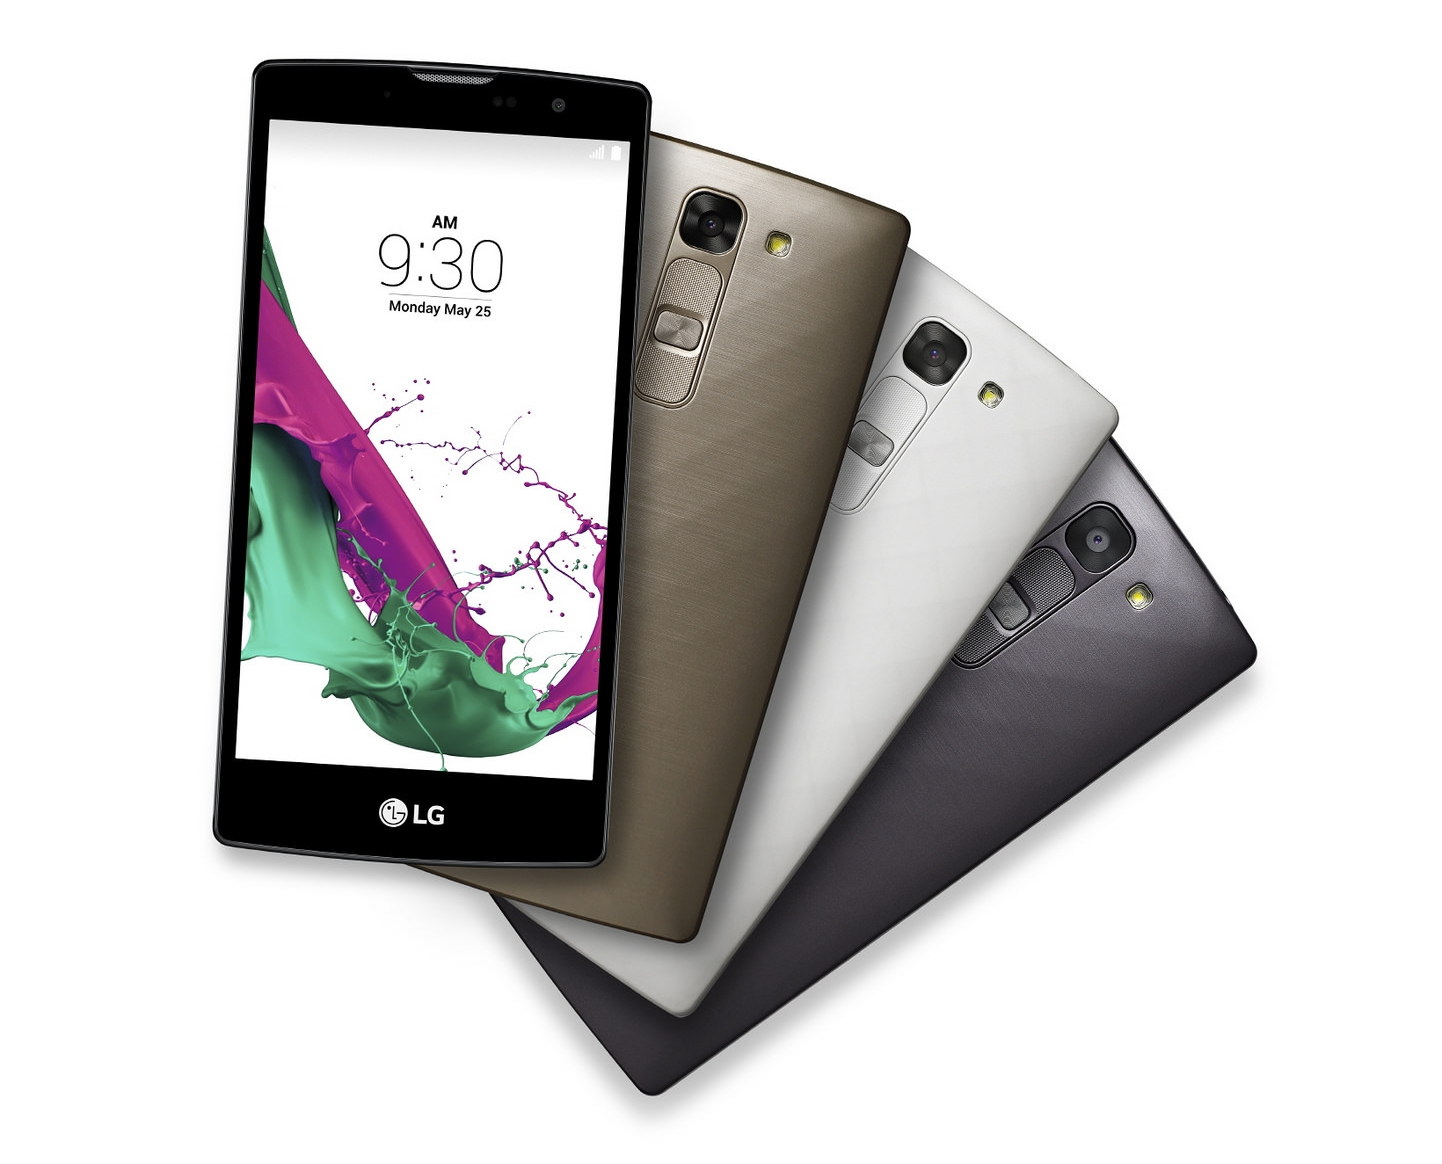 Motorola Cuadrado Lg G4 Stylus To Debut In Greece Next Week Goandroid